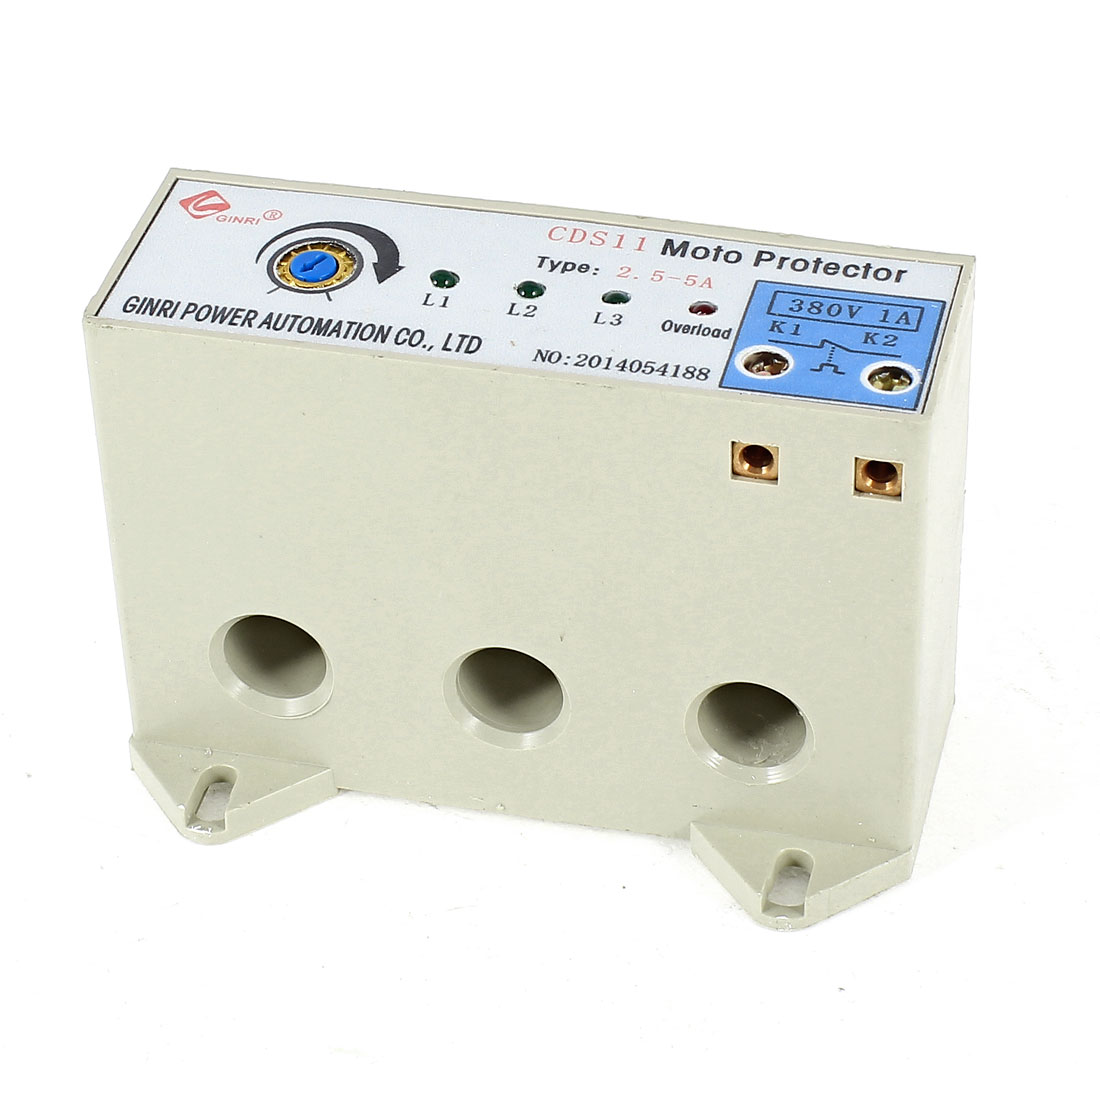 CDS-11/2.5-5A 3 Phase 2.5-5 Ampere Adjustable Current Breaker Motor Circuit Protector Non Power